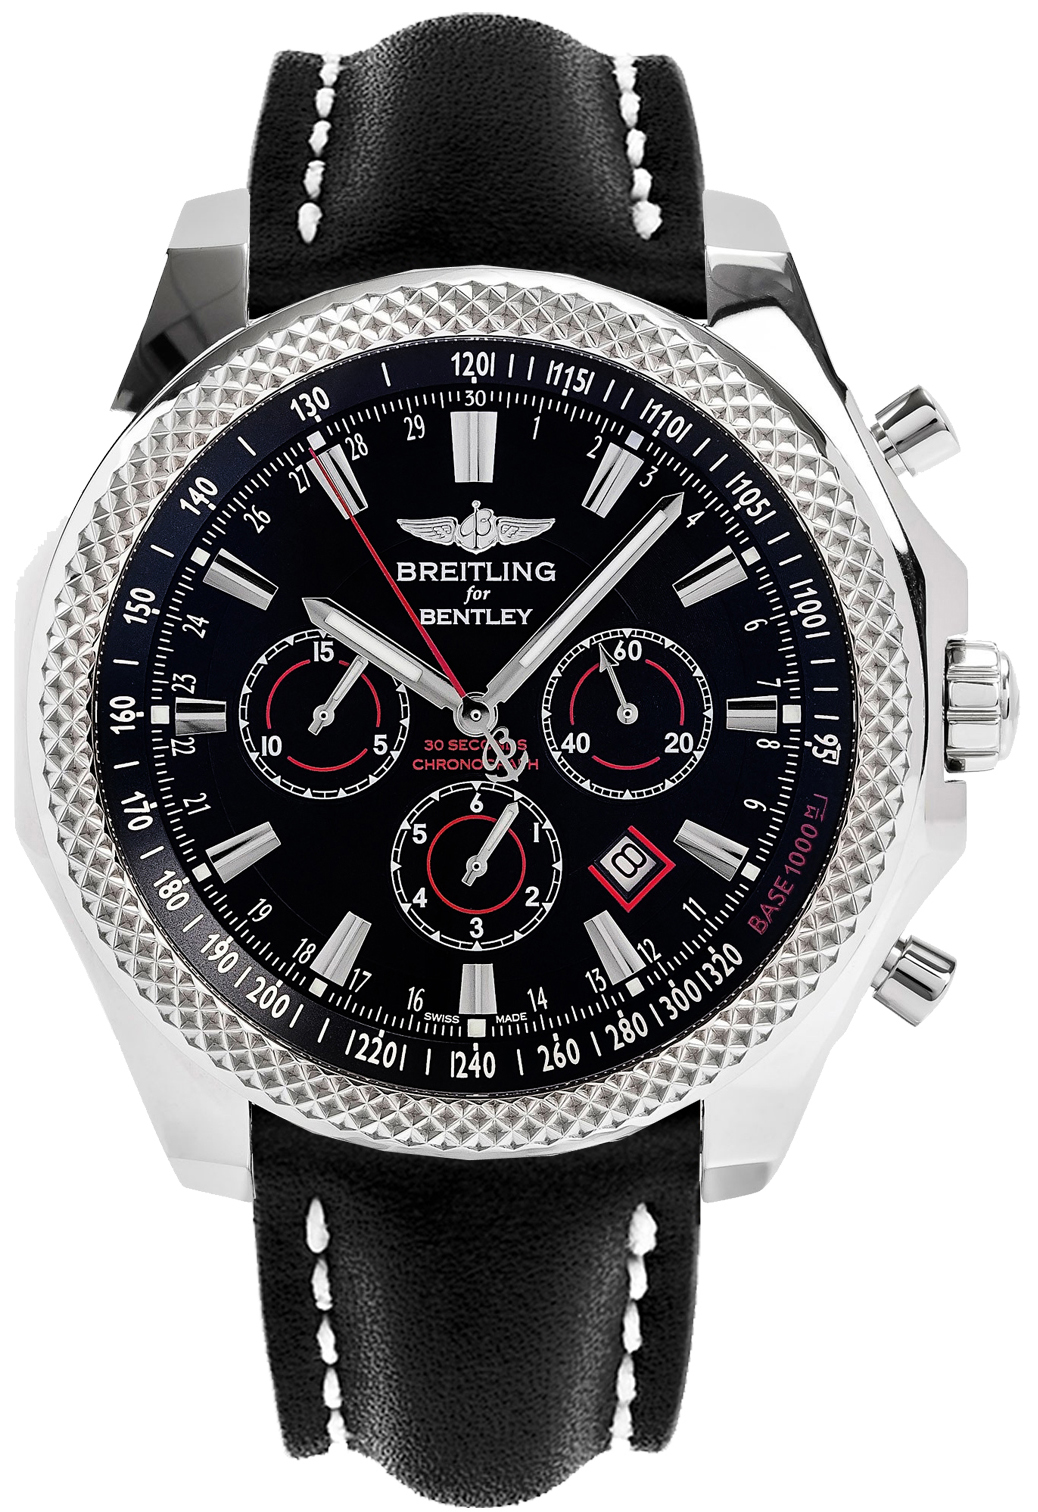 watch bentley chronograph gmt breitling bernard